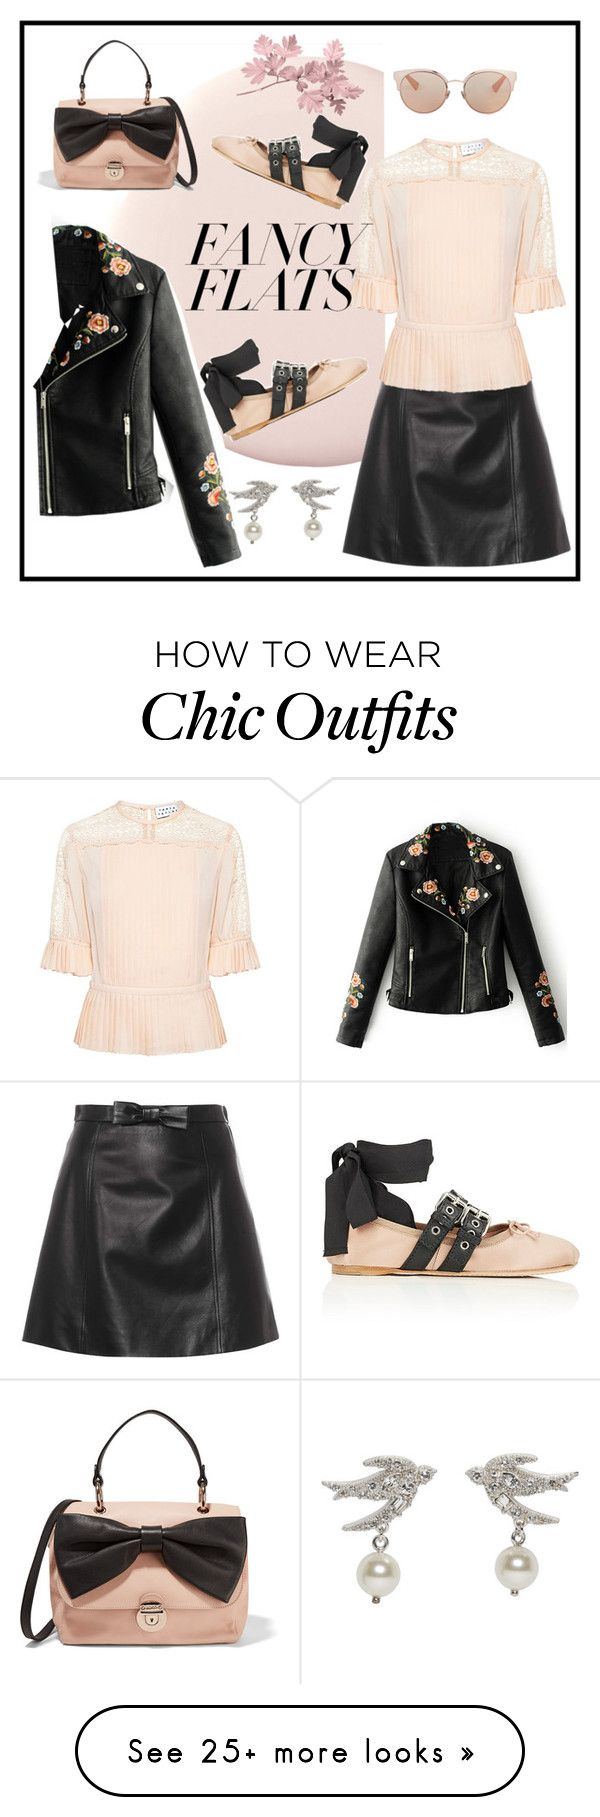 """""""Chic Ballet Flats"""" by summer913 on Polyvore featuring WithChic, Miu Miu, Tanya Taylor, Christian Dior, RED Valentino, balletflats and chicflats"""